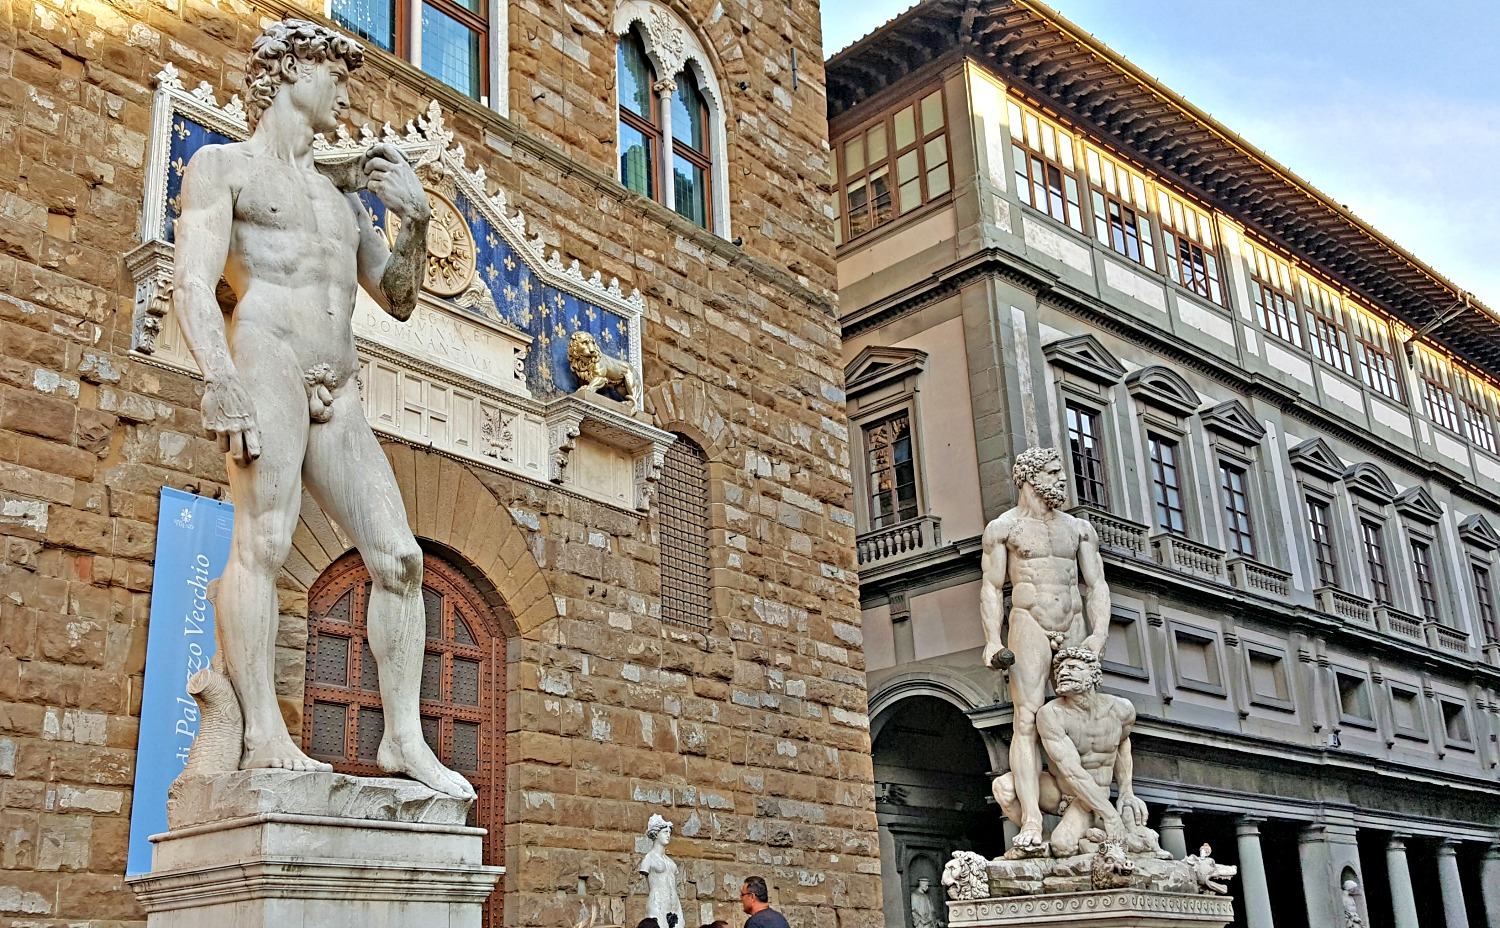 The most beautiful square in Florence - Piazza Della Signoria.